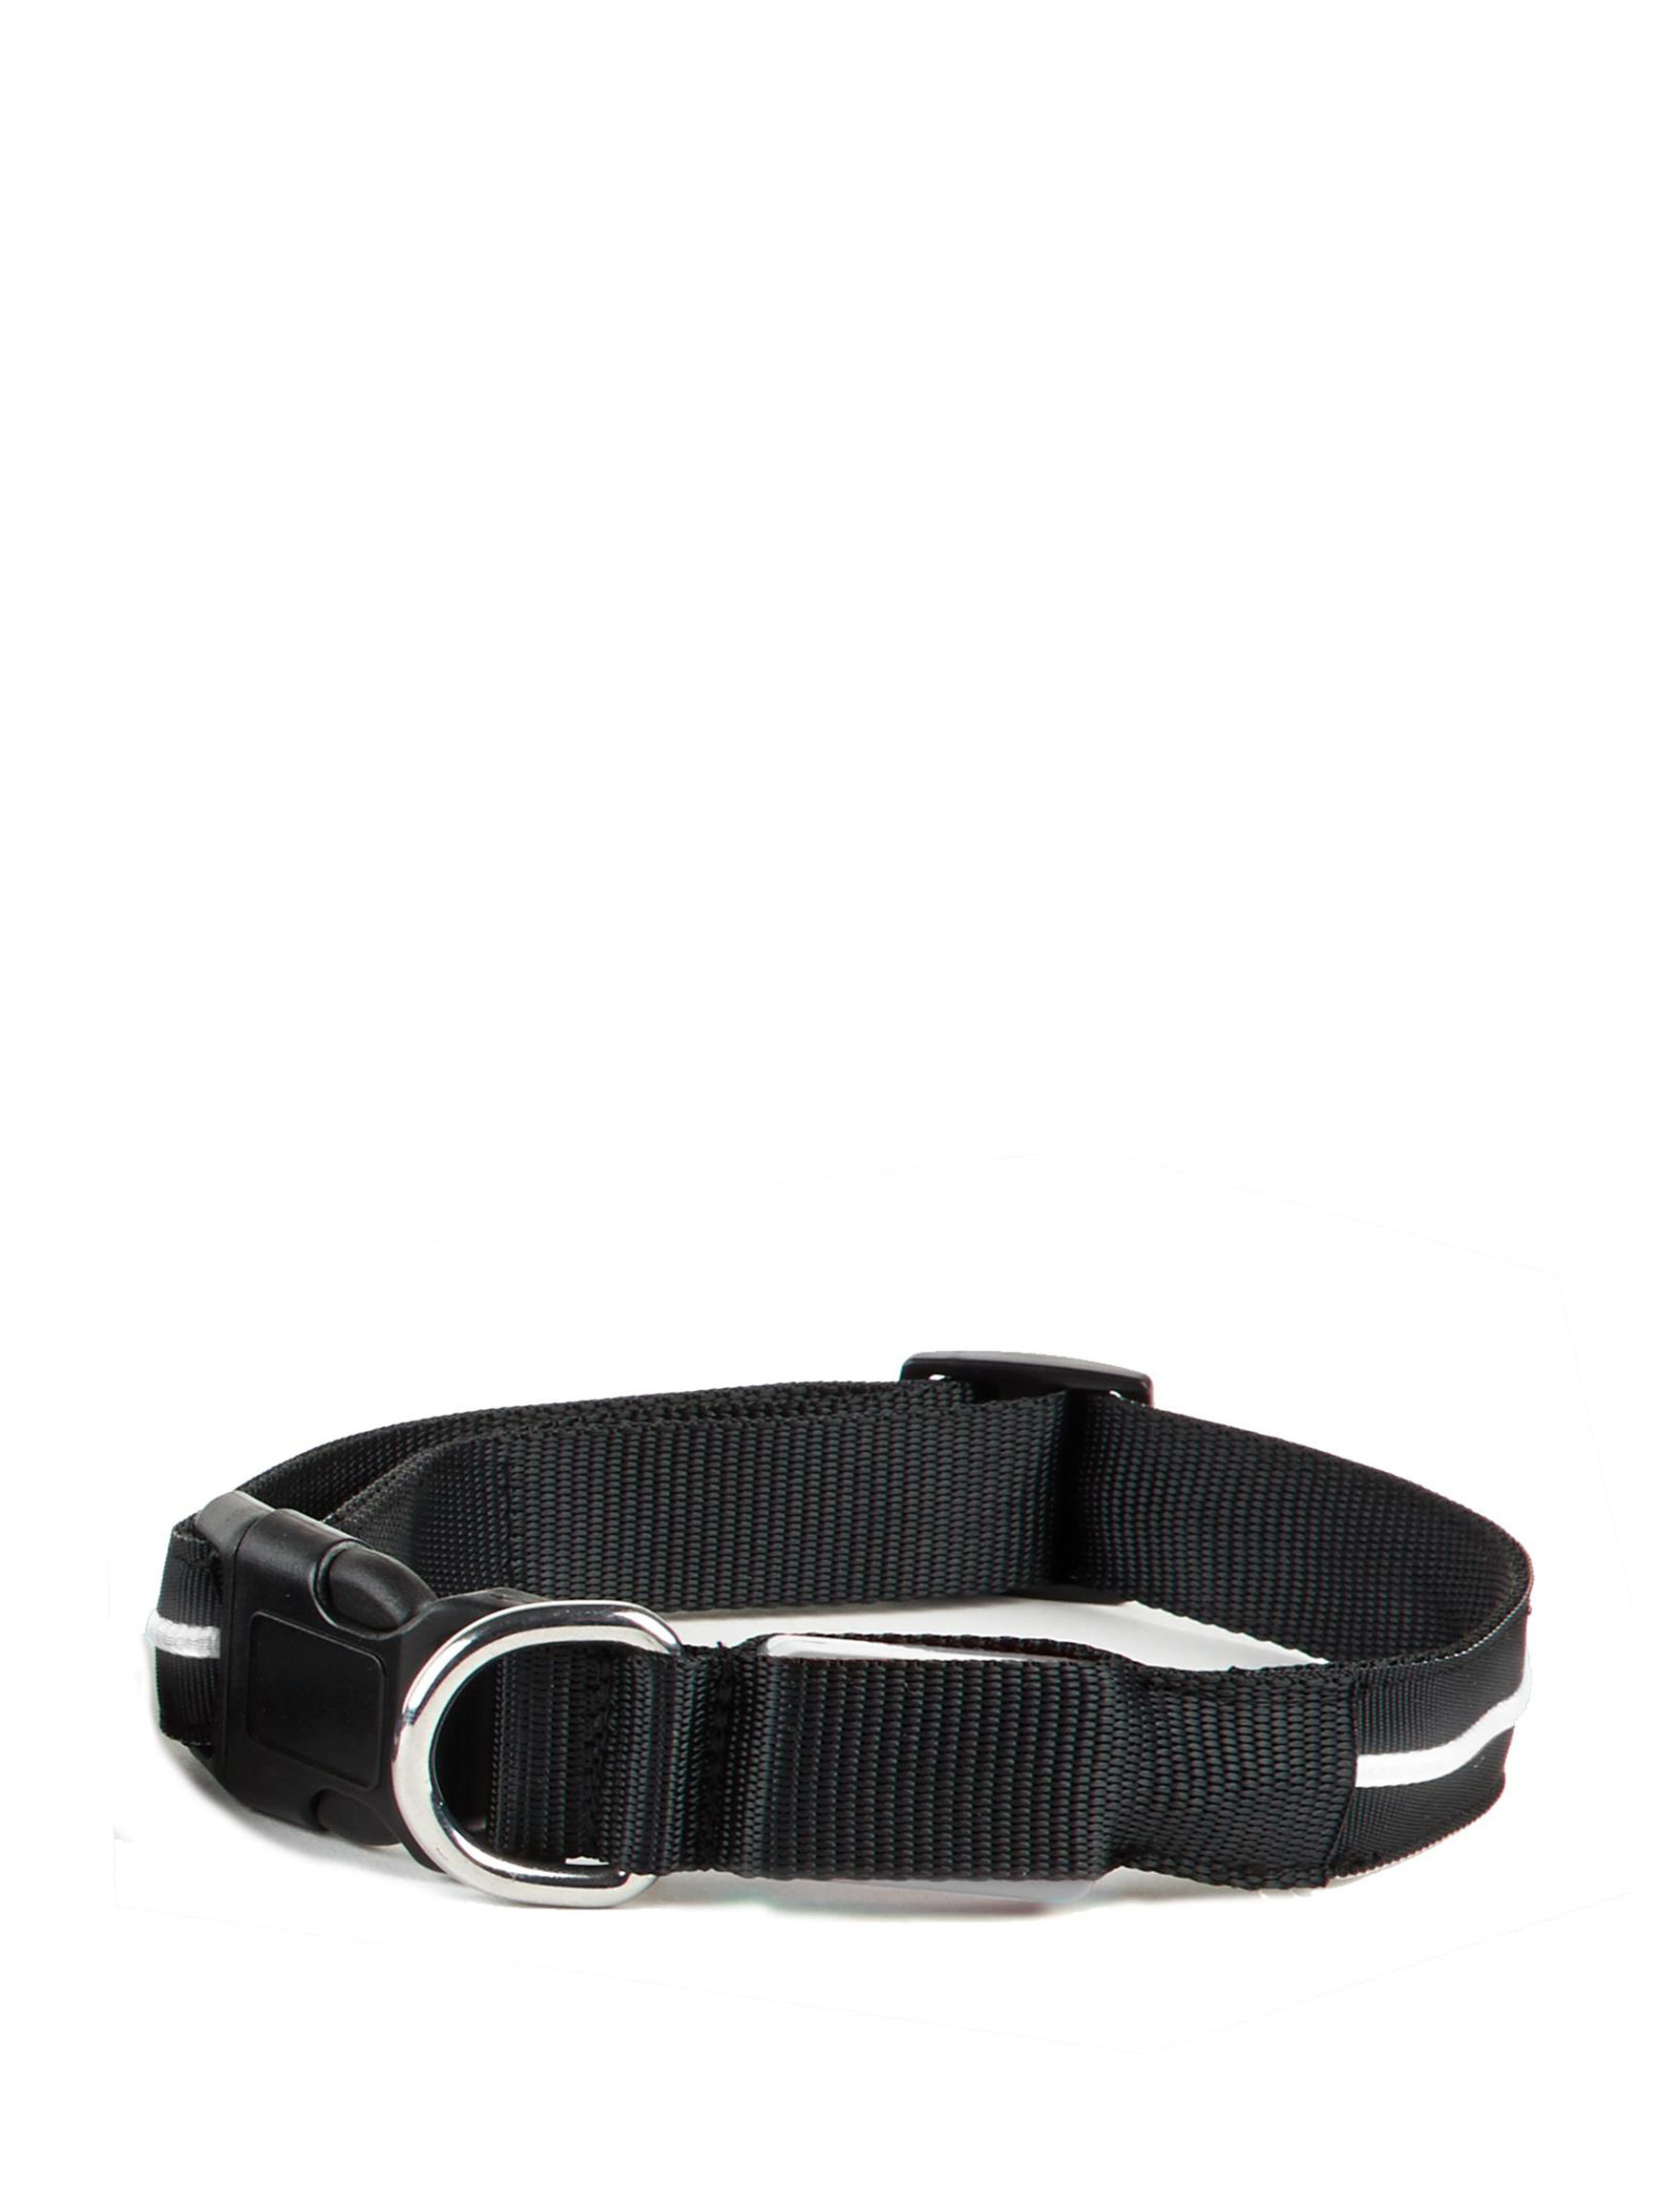 Two's Company White Accessories Pet Grooming